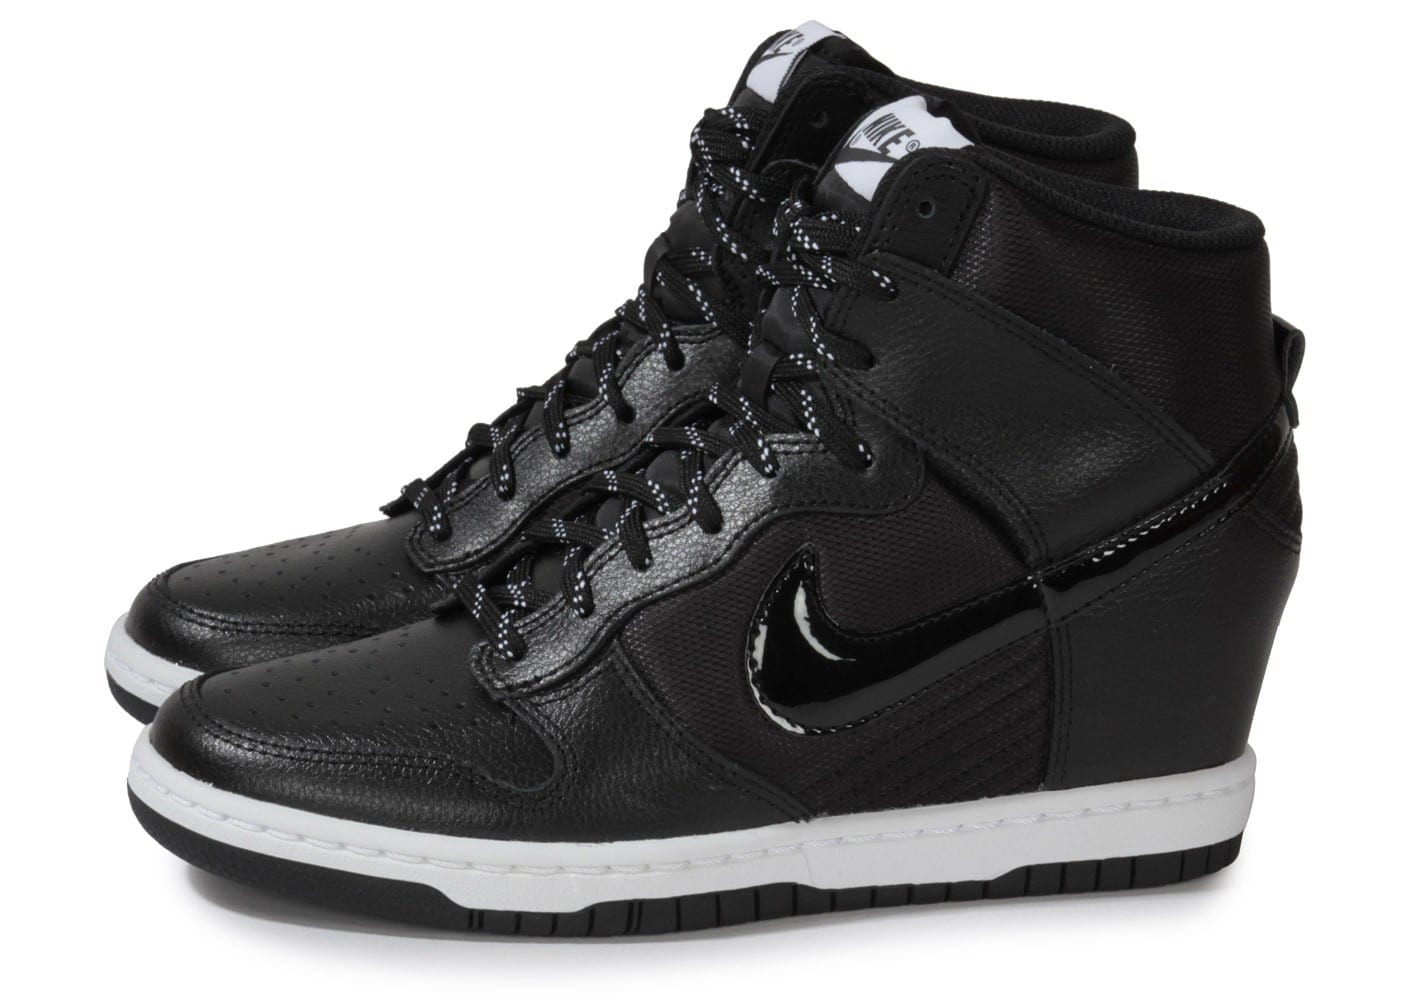 Nike Dunk Sky Hi Essential Noire - Chaussures Chaussures ...